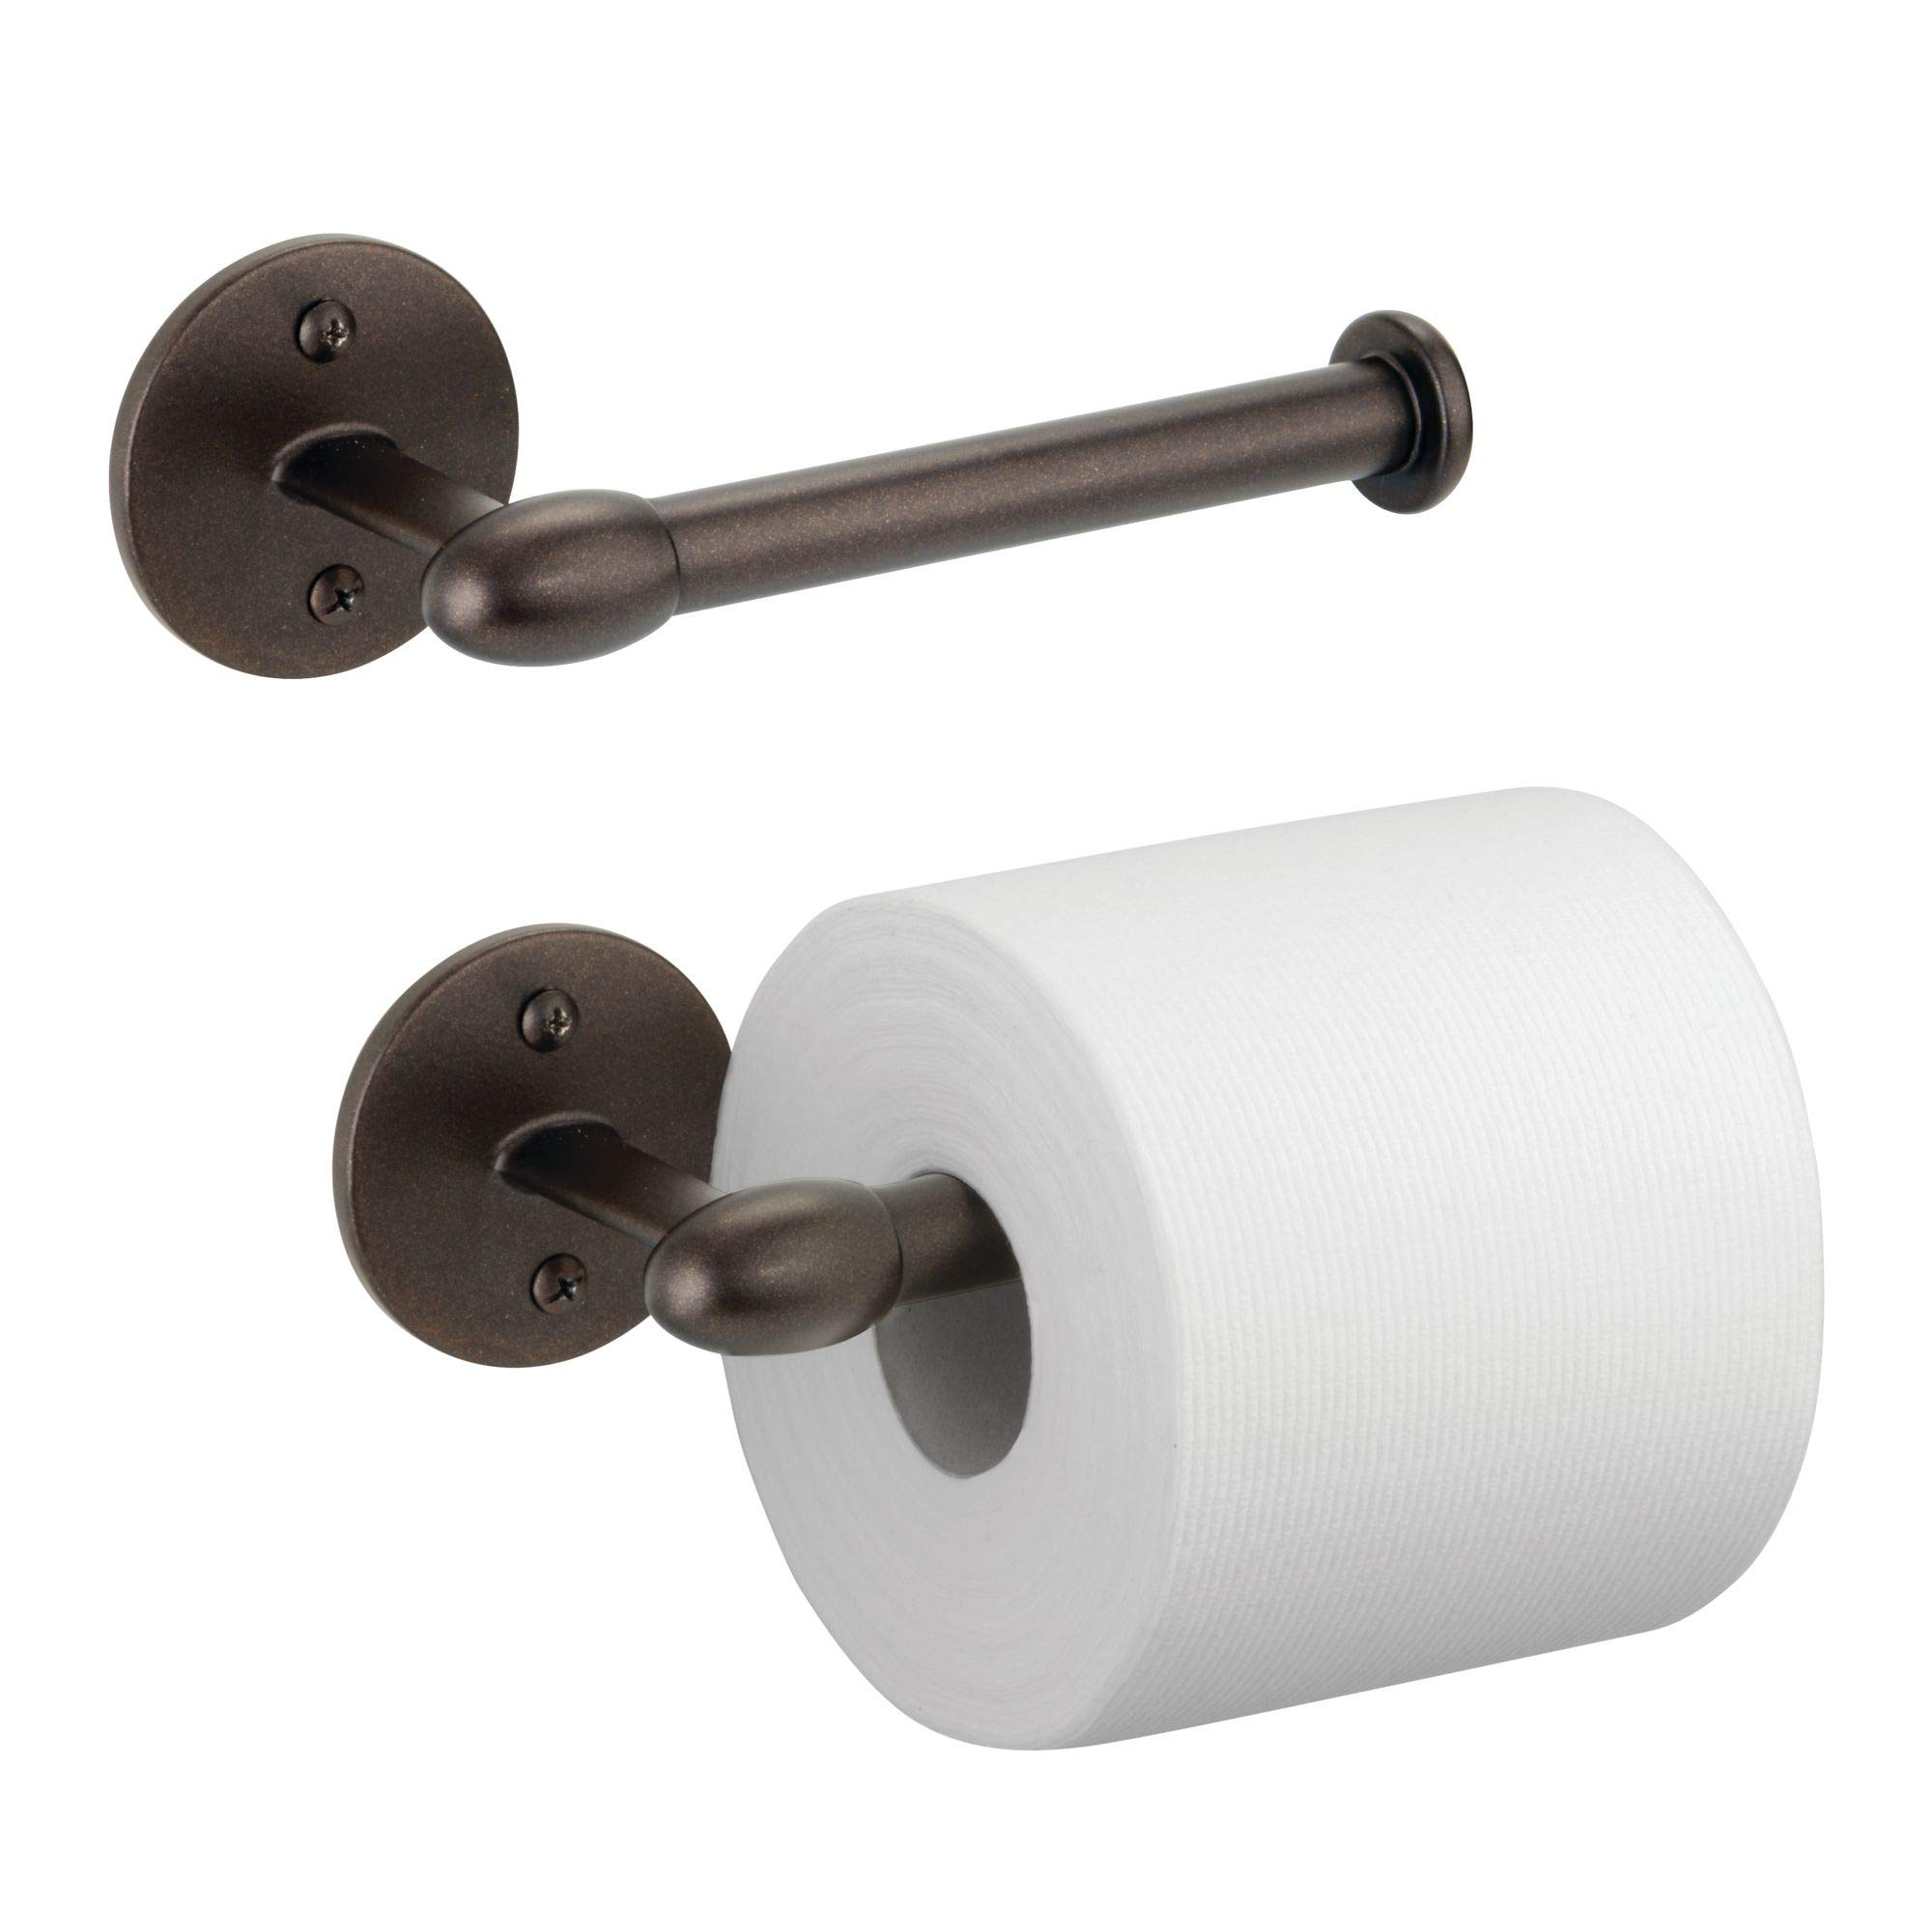 mDesign Modern Metal Wall Mount Toilet Tissue Paper Roll Holder and Dispenser for Bathroom Storage - Holds and Dispenses One Roll, Mounting Hardware Included - 2 Pack, Strong, Durable Steel in Bronze